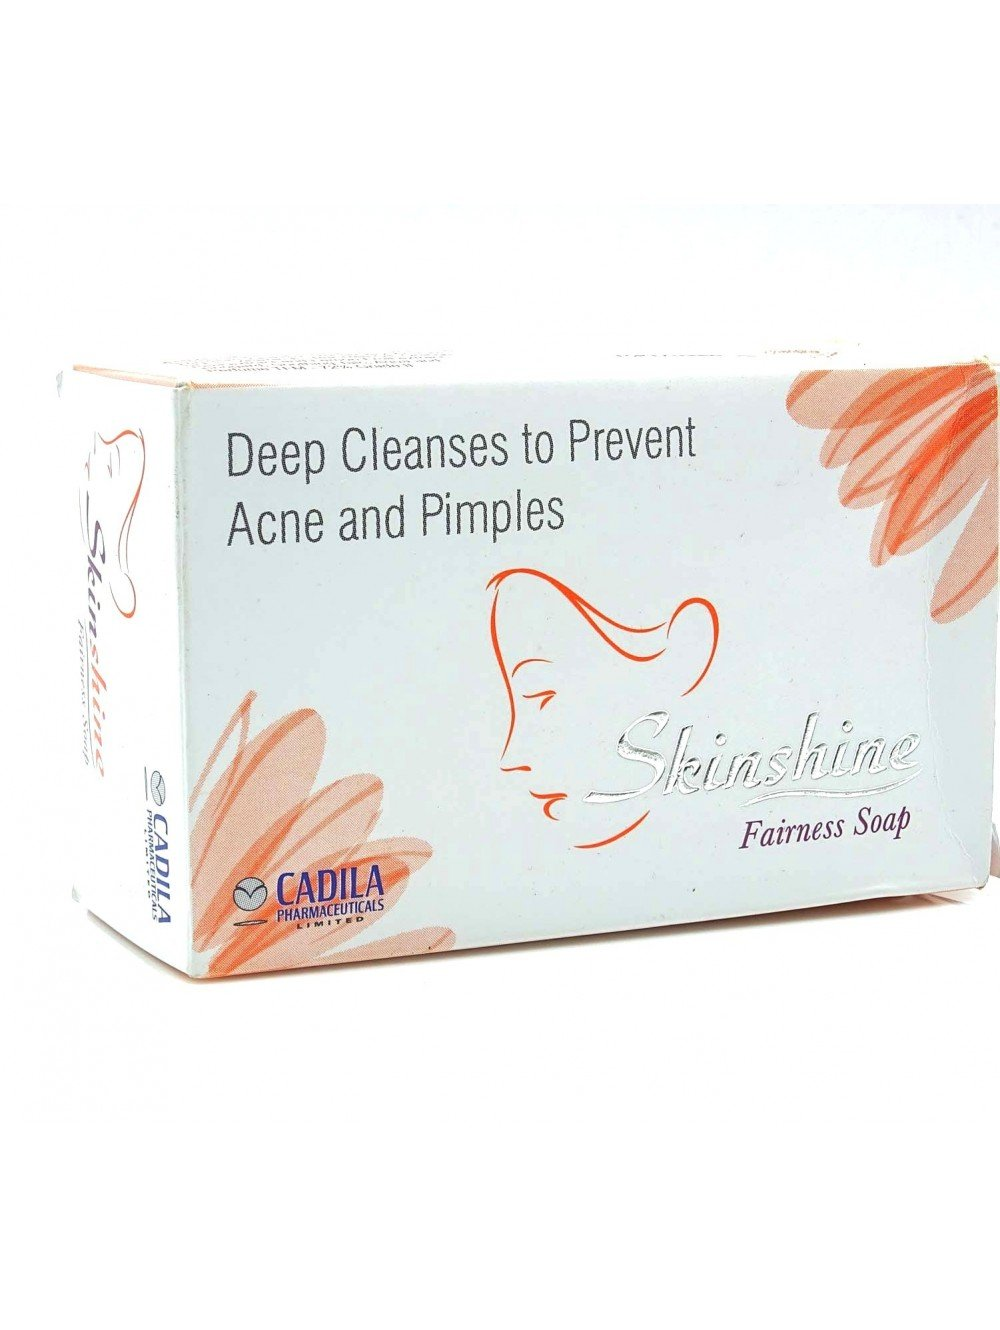 75gm Cadila Skin Shine Fairness Soap For Deep Cleanses To Prevent Acne & Pimples